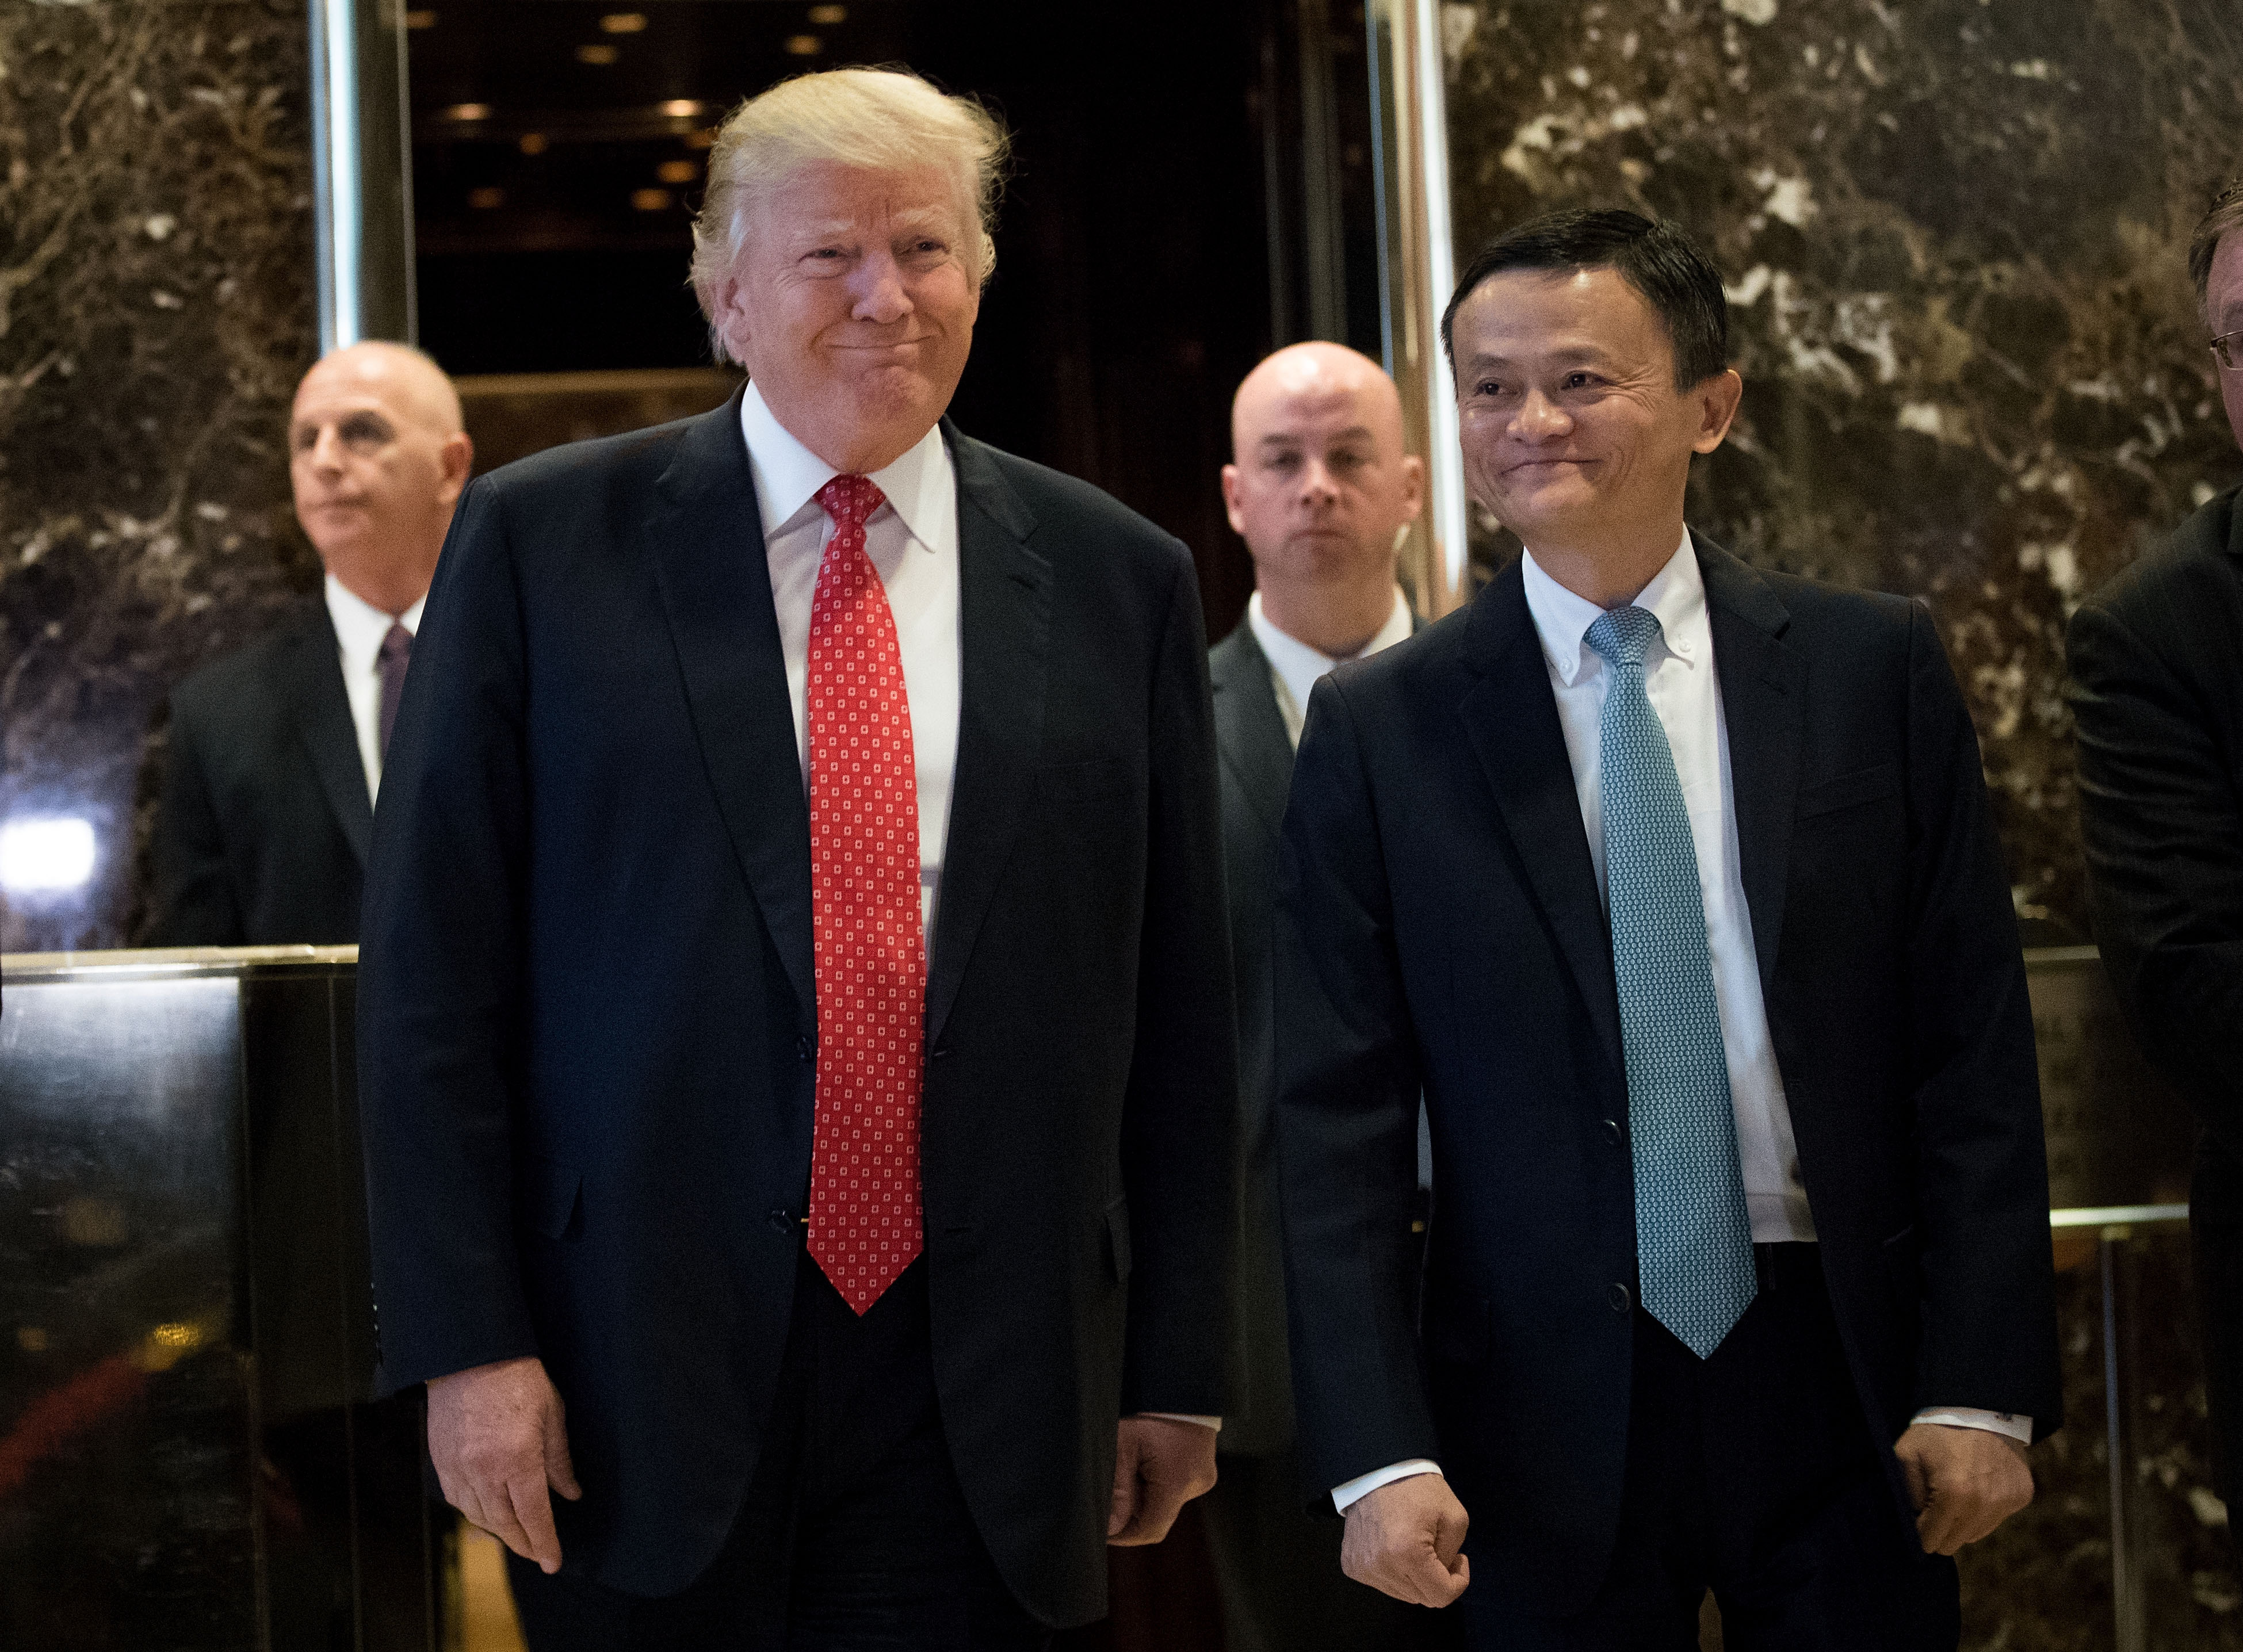 Jack Ma next to U.S. President Donald Trump after a meeting at Trump Tower in New York City | Photo: Getty Images